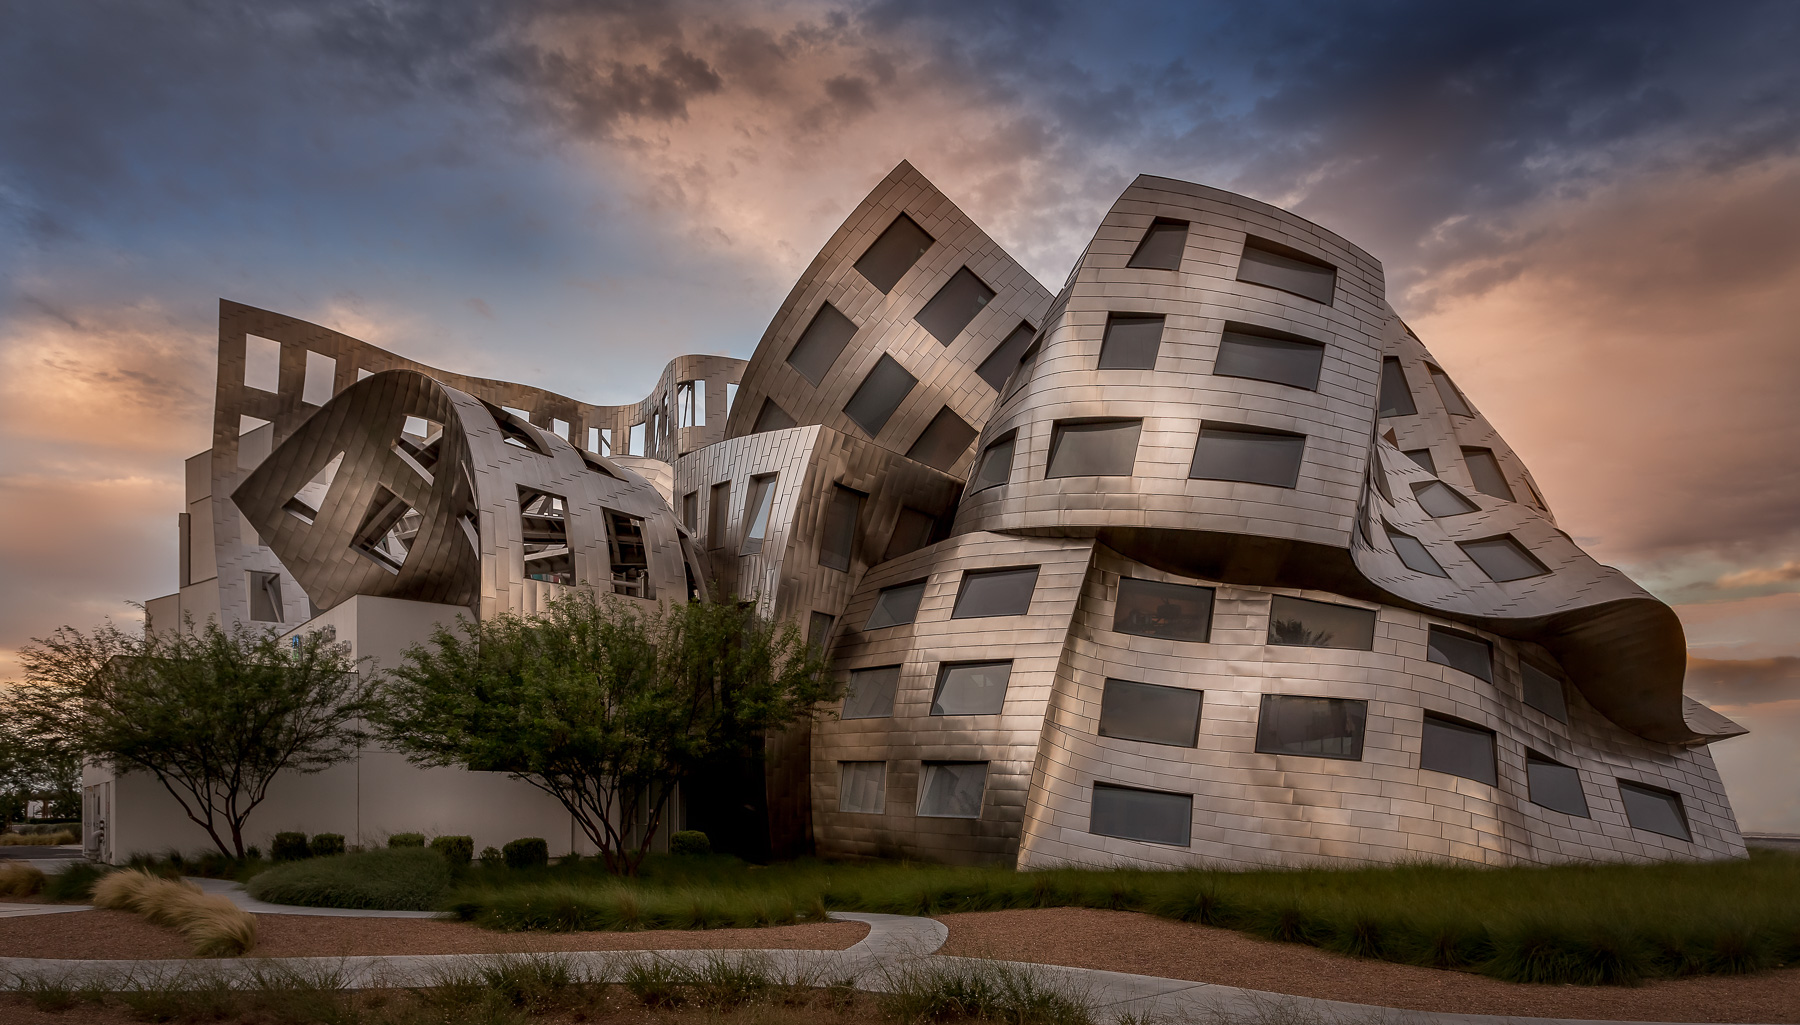 Lou Ruvo Center for Brain Research by Frank Gehry, Las Vegas, NV